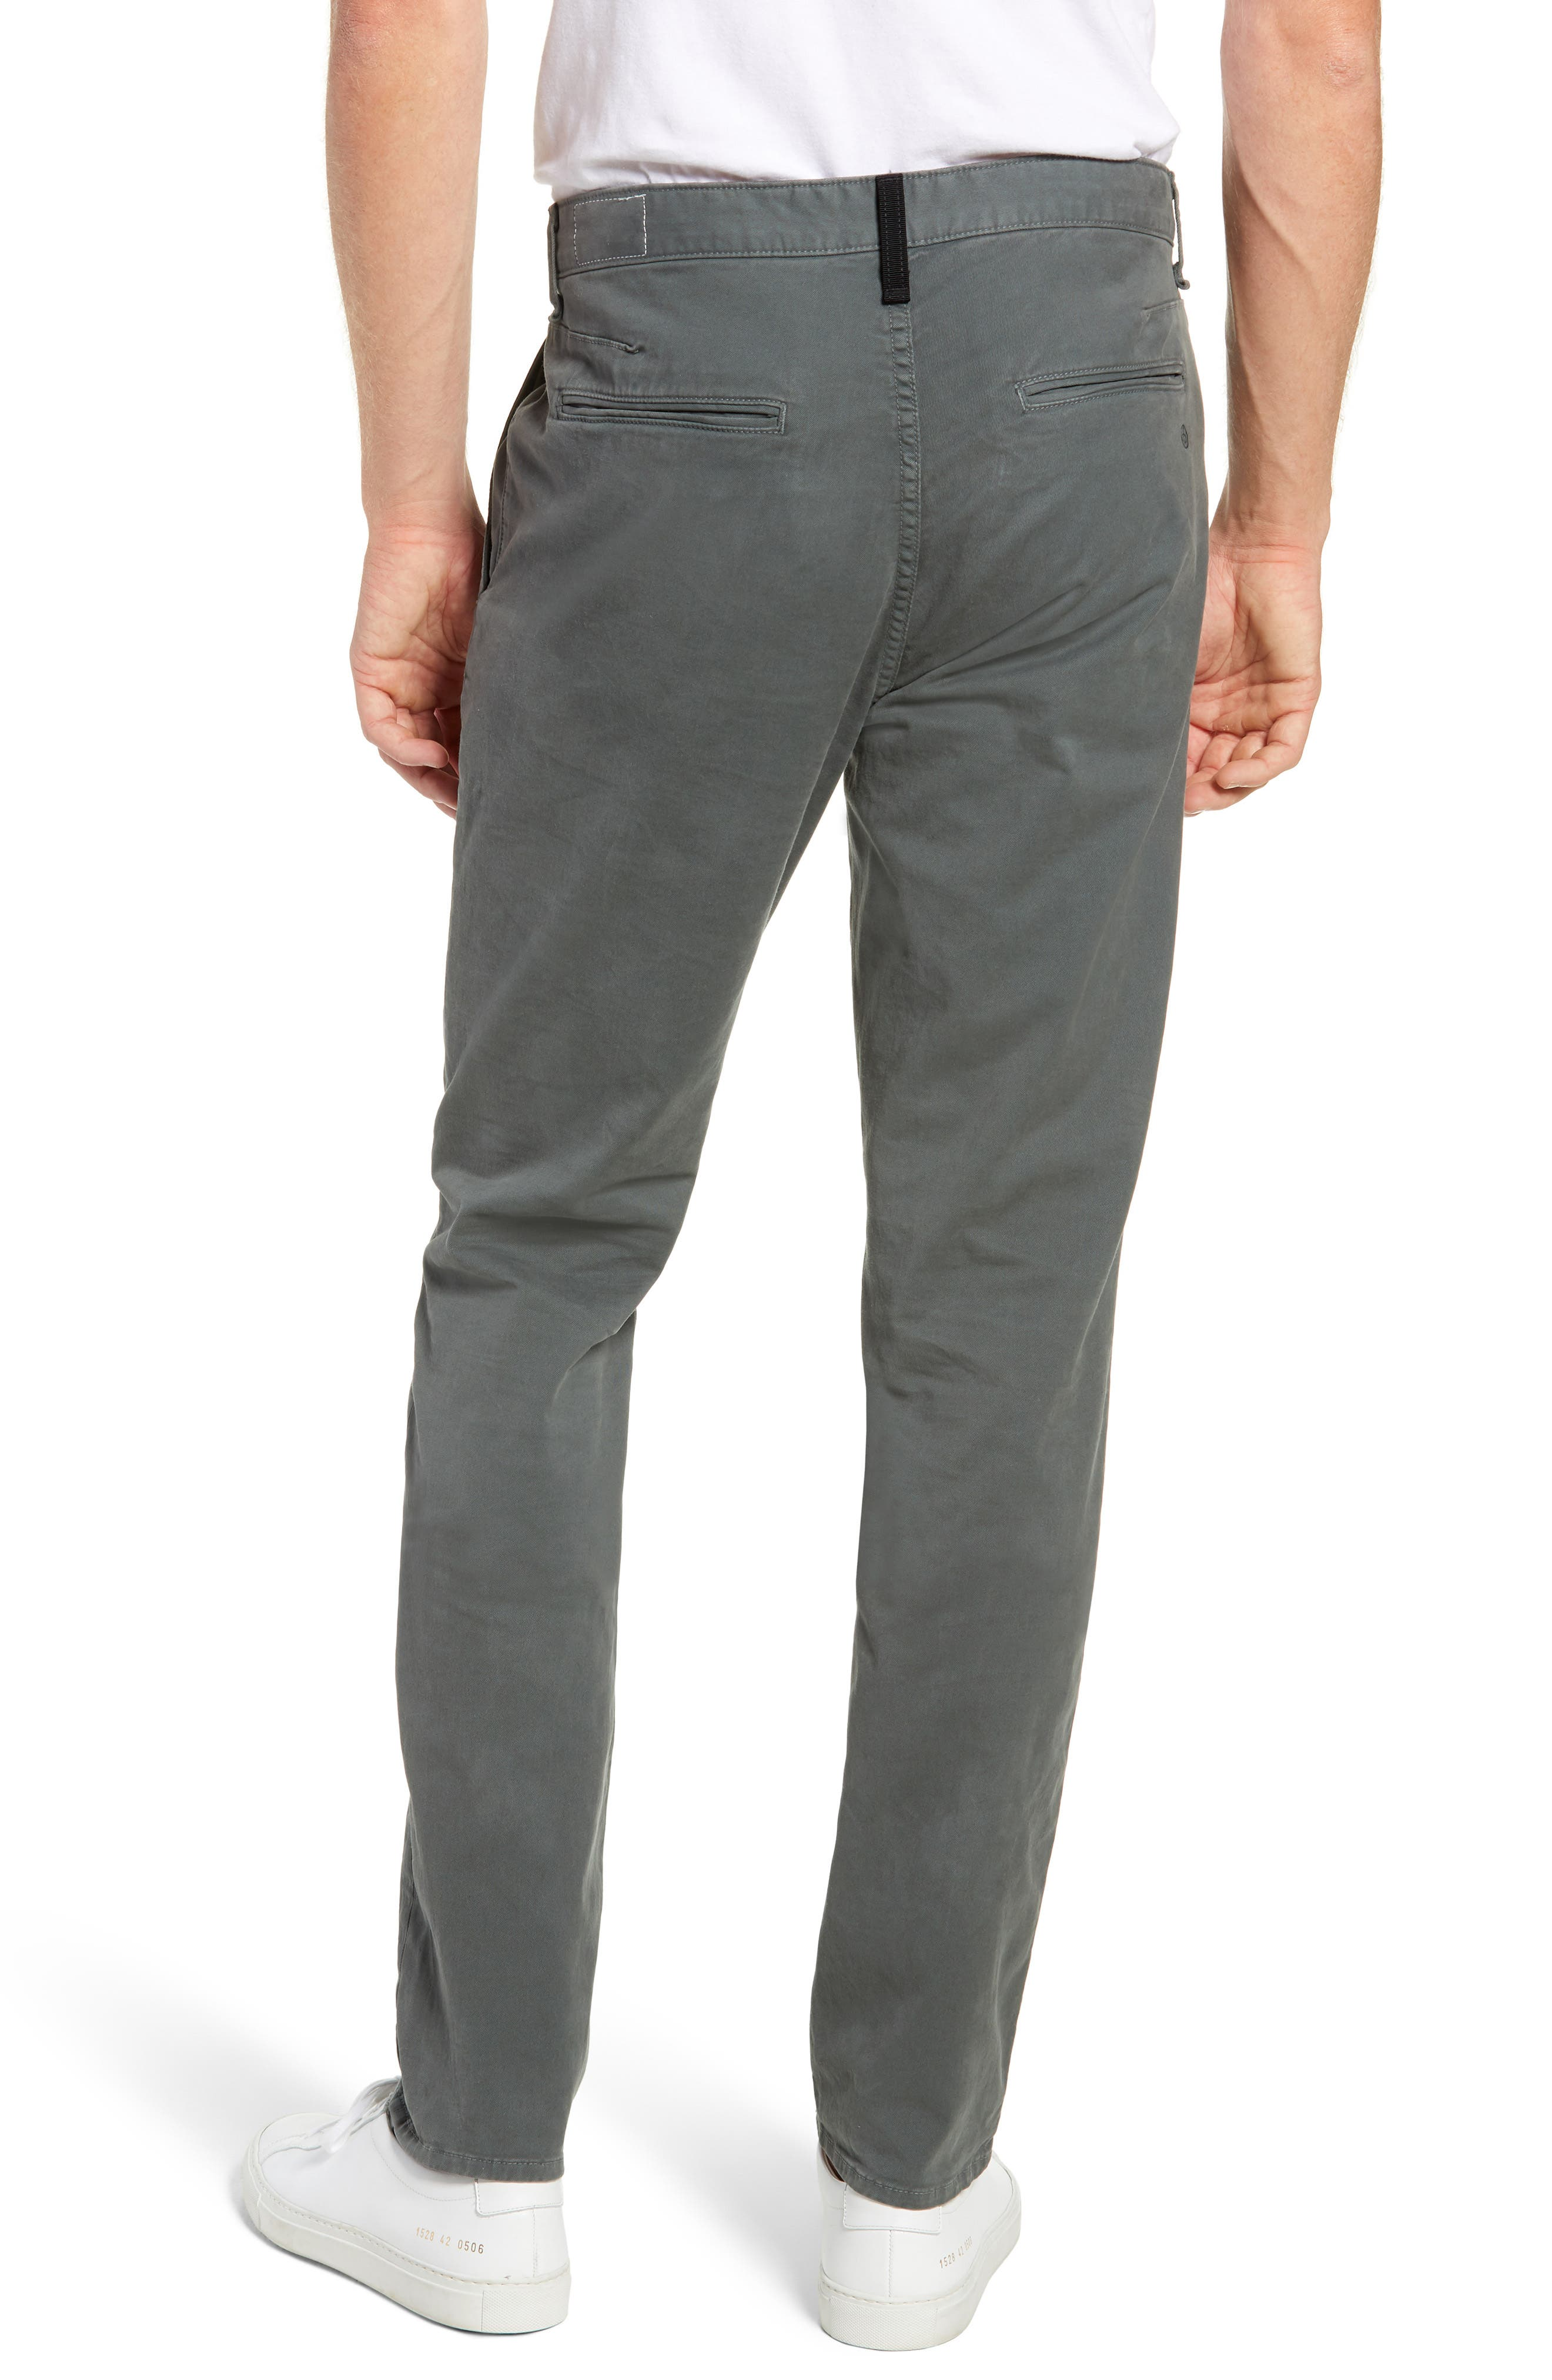 Fit 2 Slim Fit Chinos,                             Alternate thumbnail 2, color,                             TORREY PINE